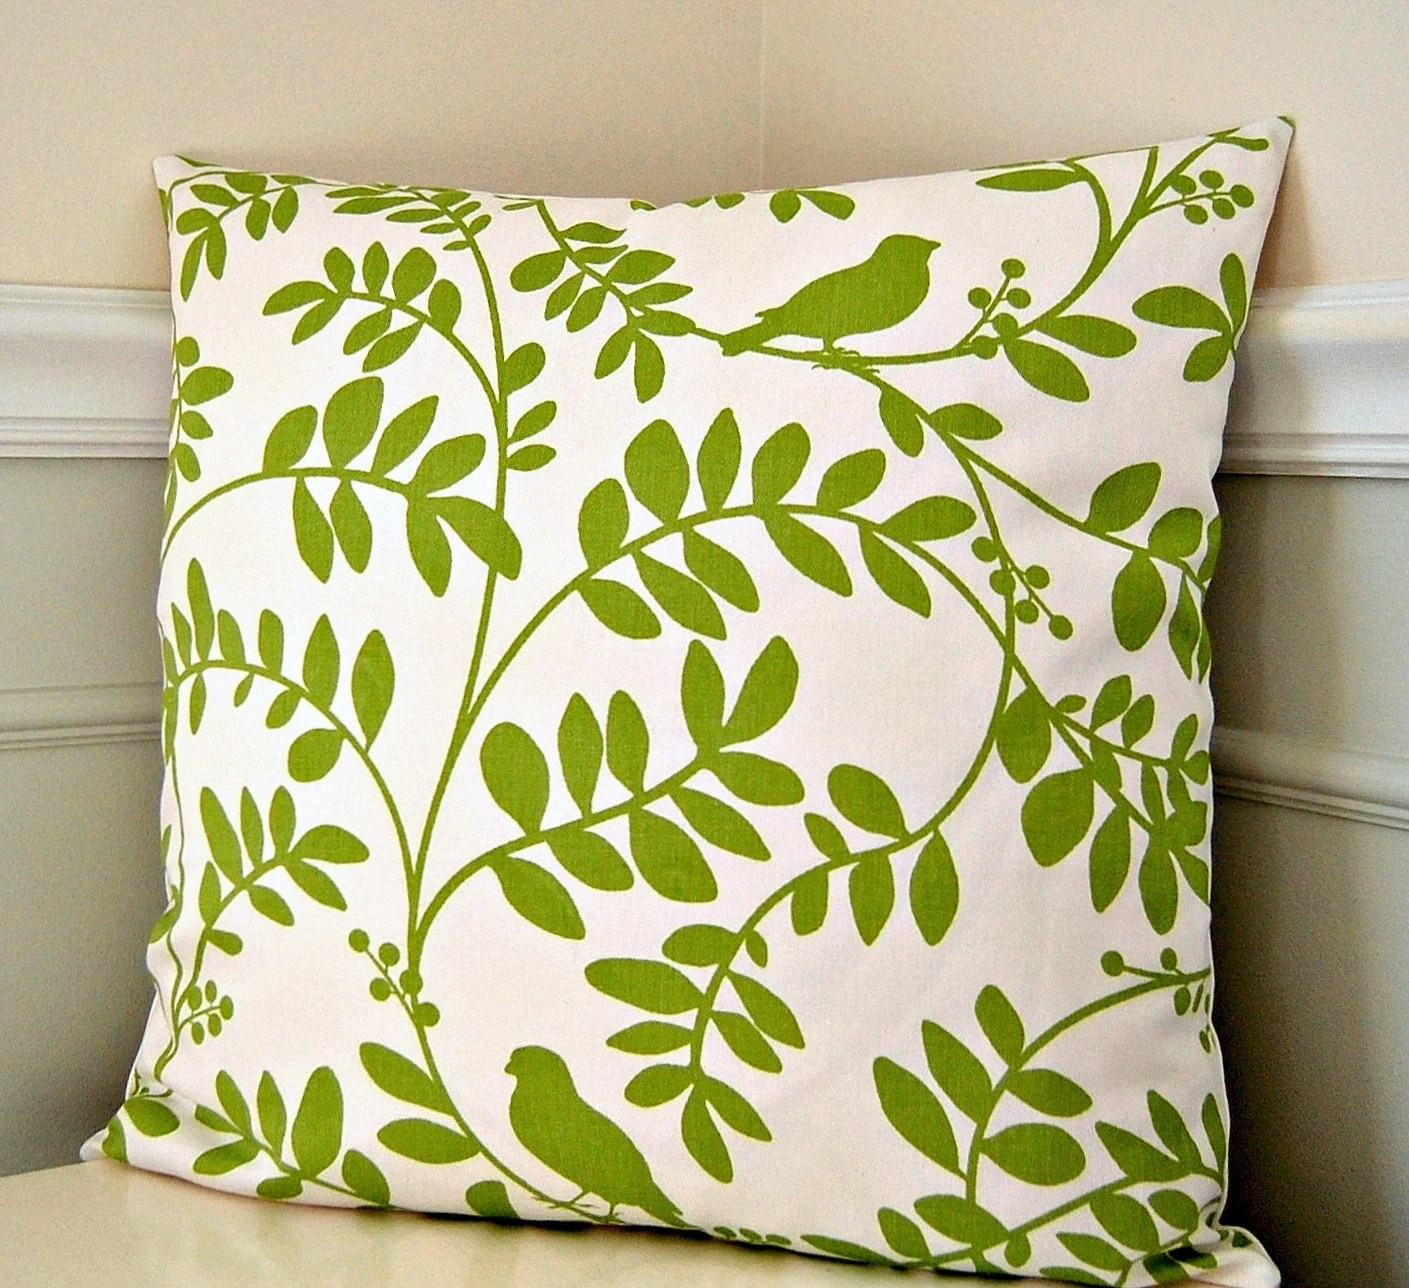 Green Floral Pillow Cover Green and White Throw Pillow 18x18